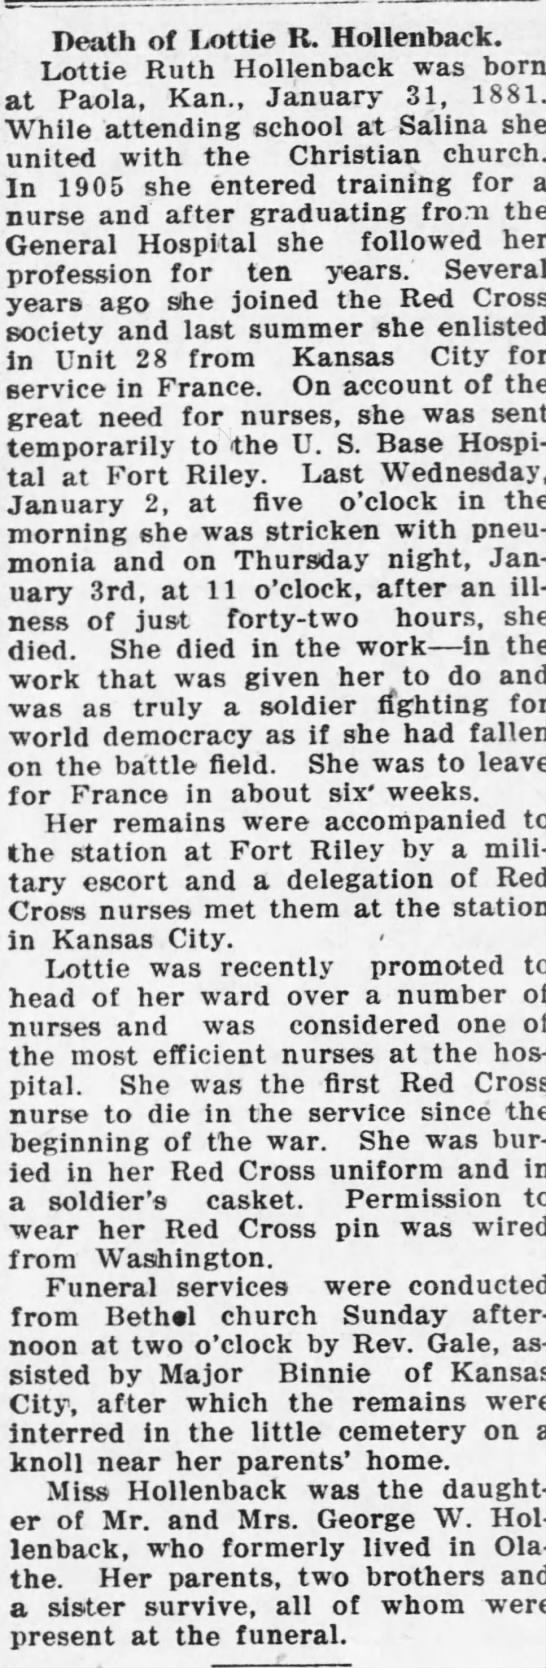 Obituary of Lottie R. Hollenback, 10 January 1918, The Olathe Mirror, Olathe, Kansas -